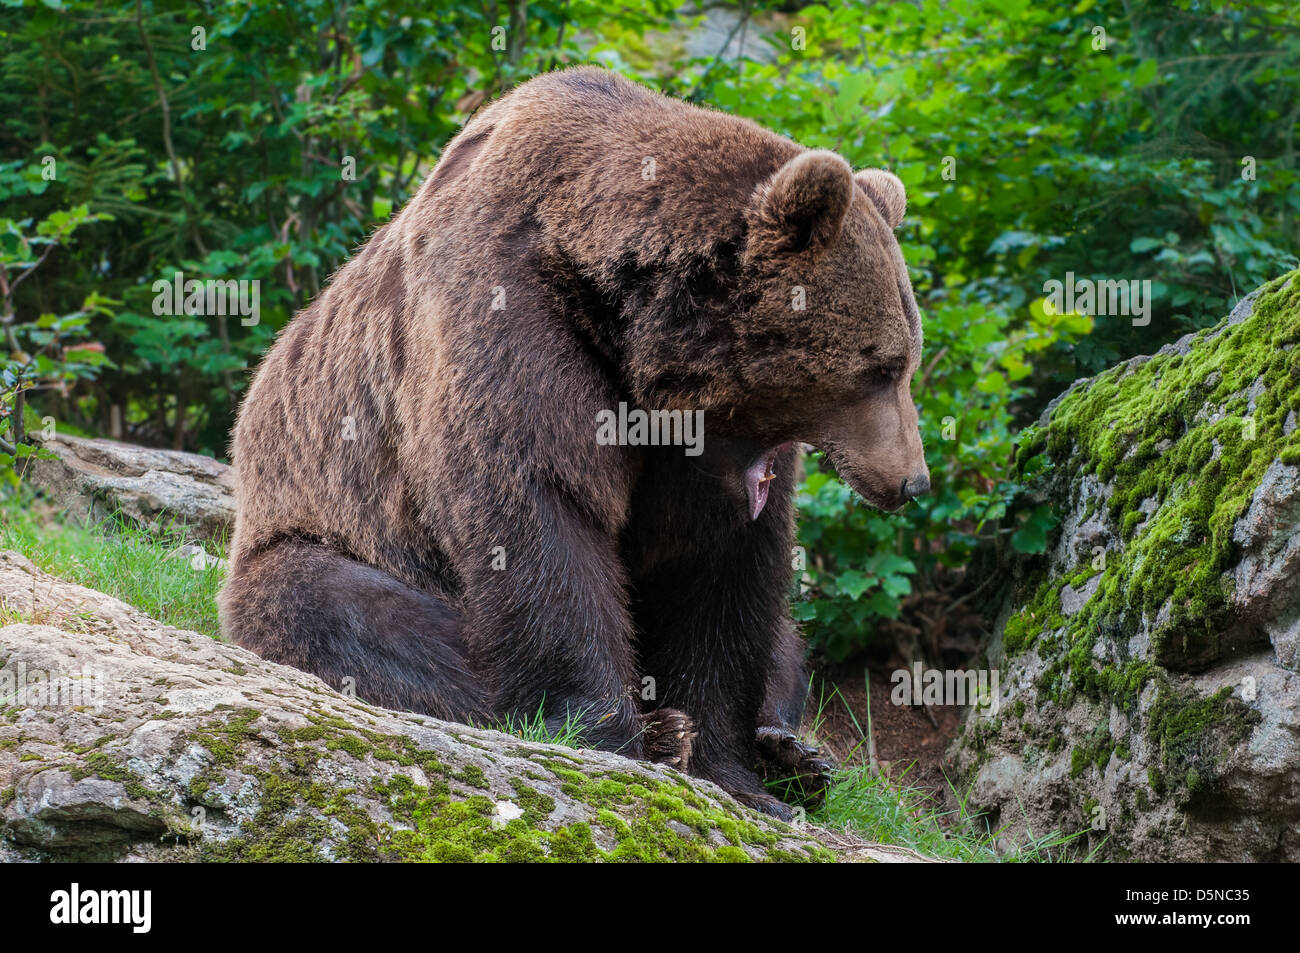 Brown bear photographed in Bayerischer Wald, Germany - Stock Image